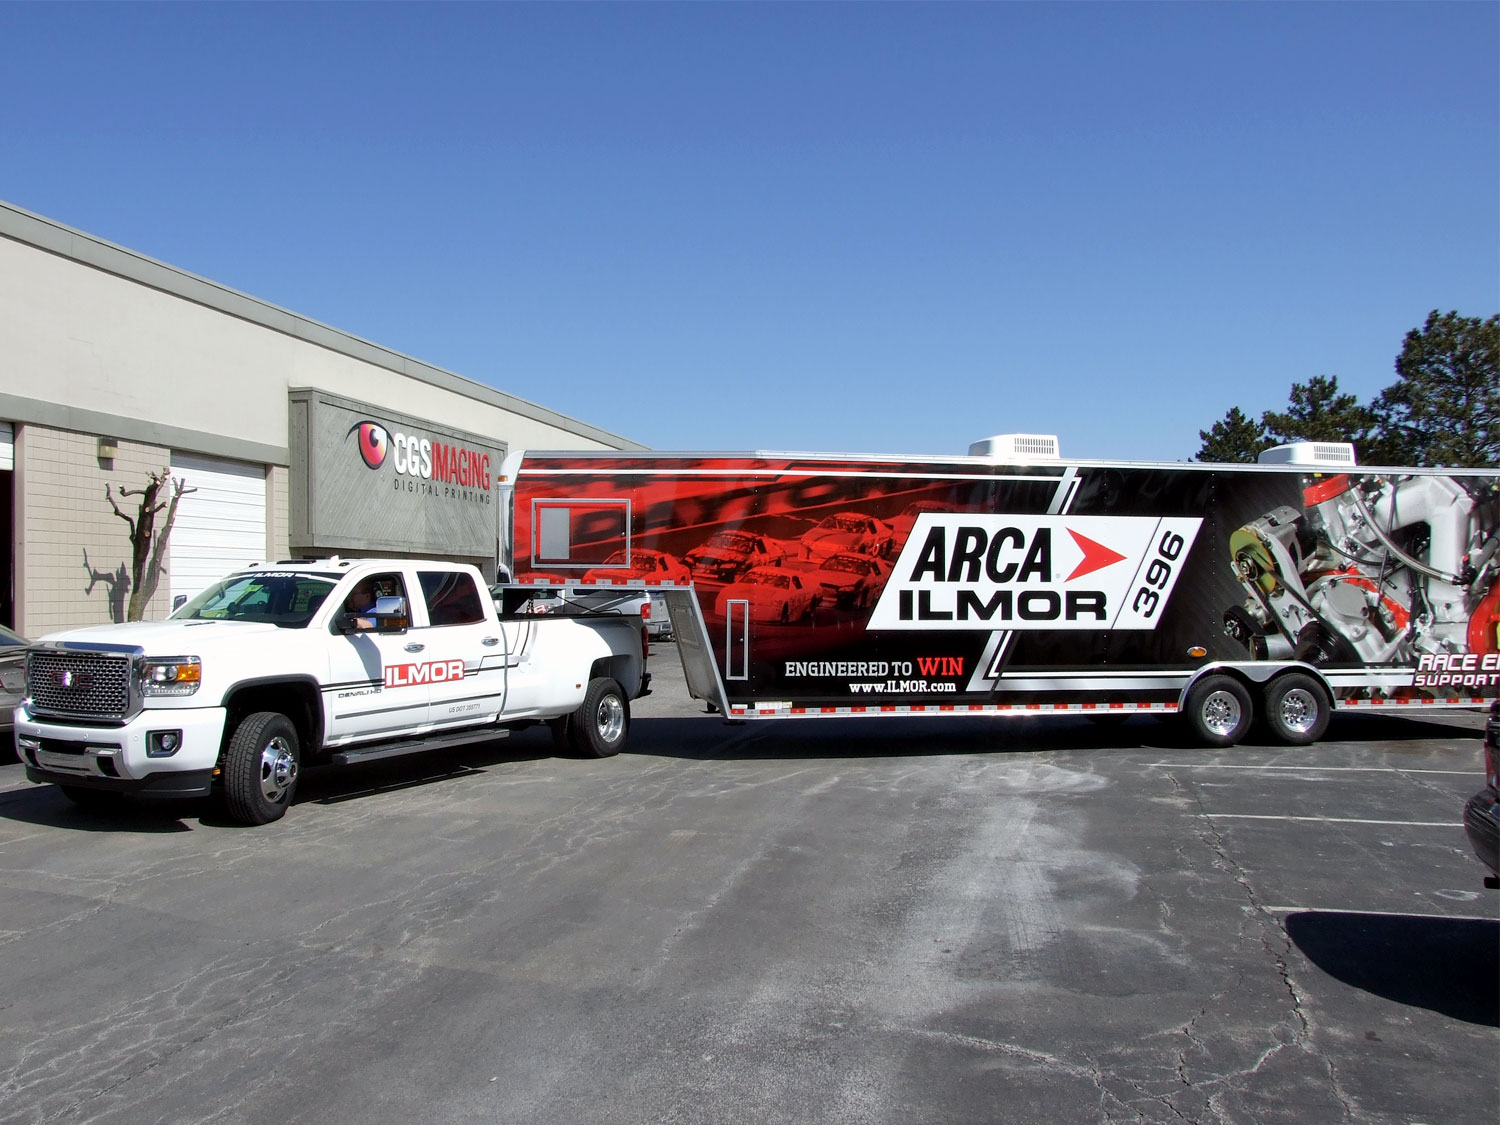 ARCA Ilmor 396 Truck and Trailer Graphics